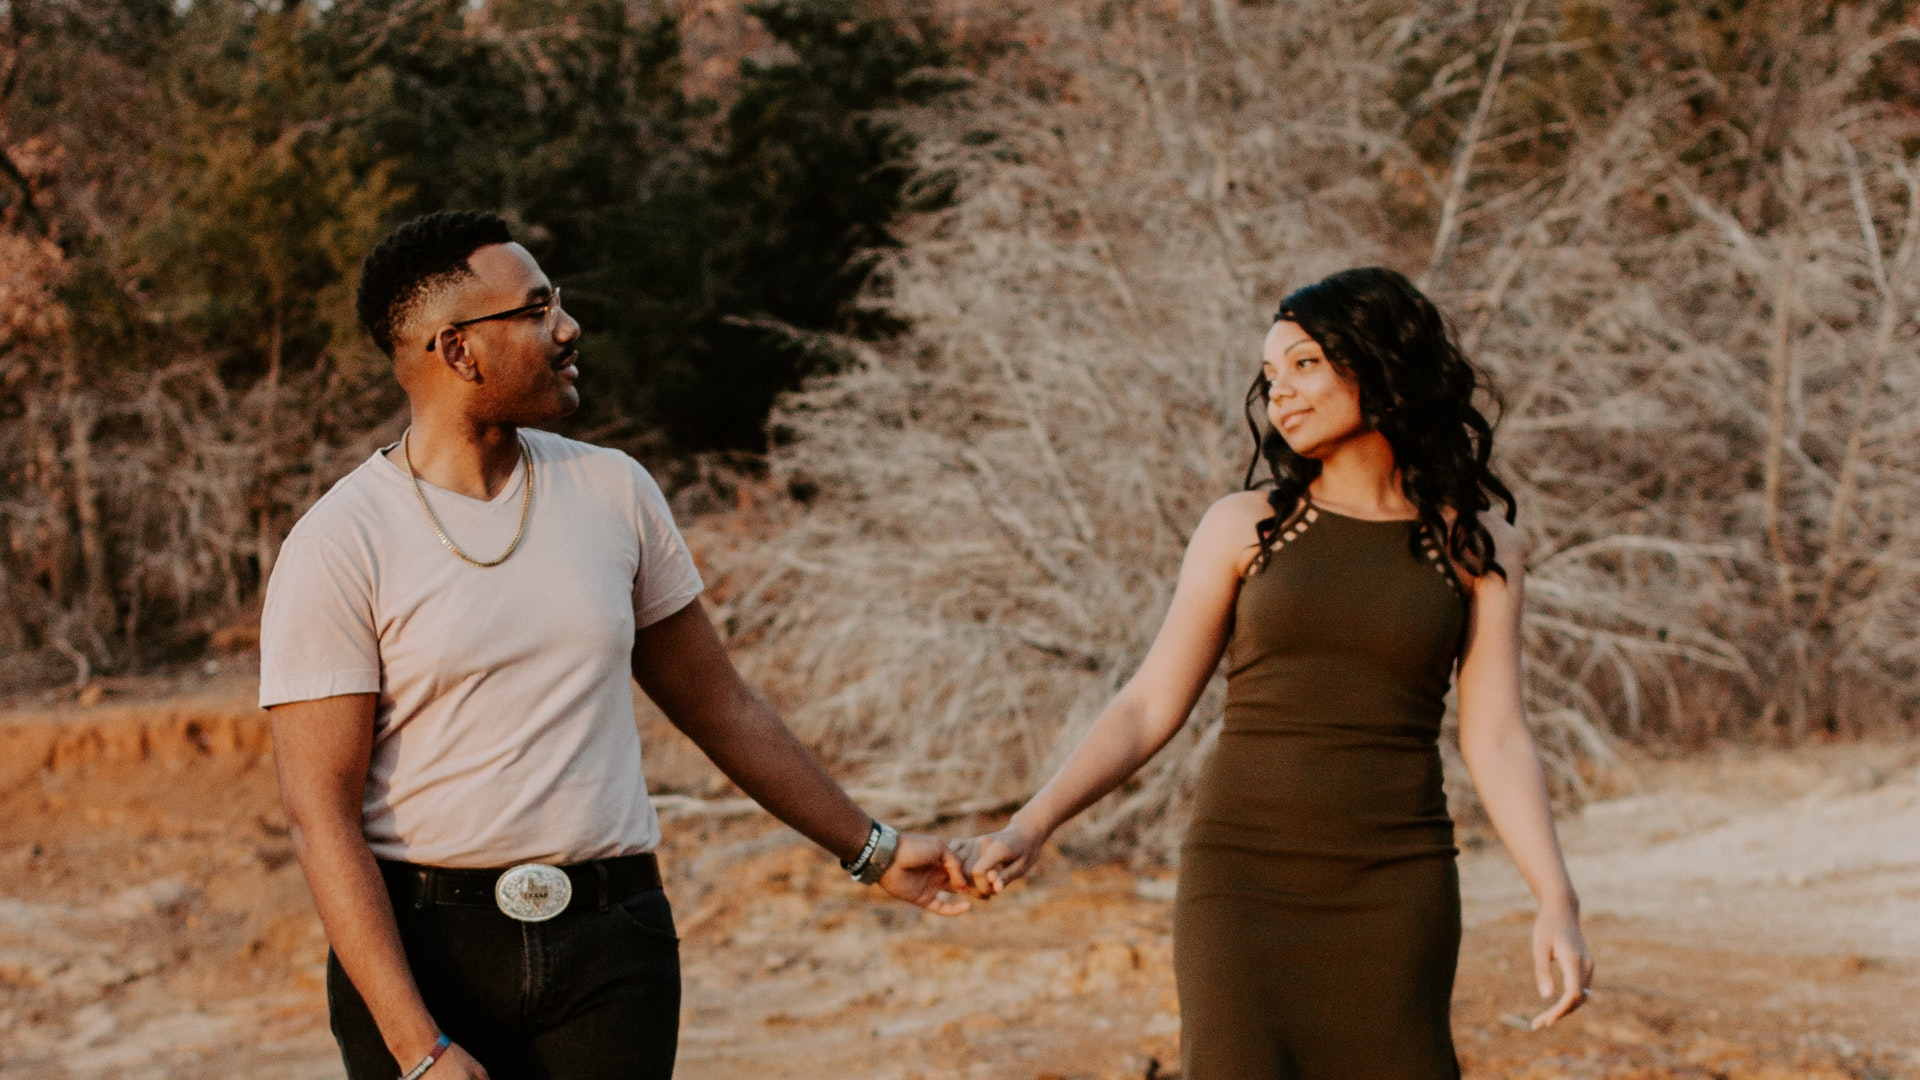 A black couple on a date holding hands walking a dusty trail in the peaceful woods during the daytime while gazing lovingly into each other's eyes.